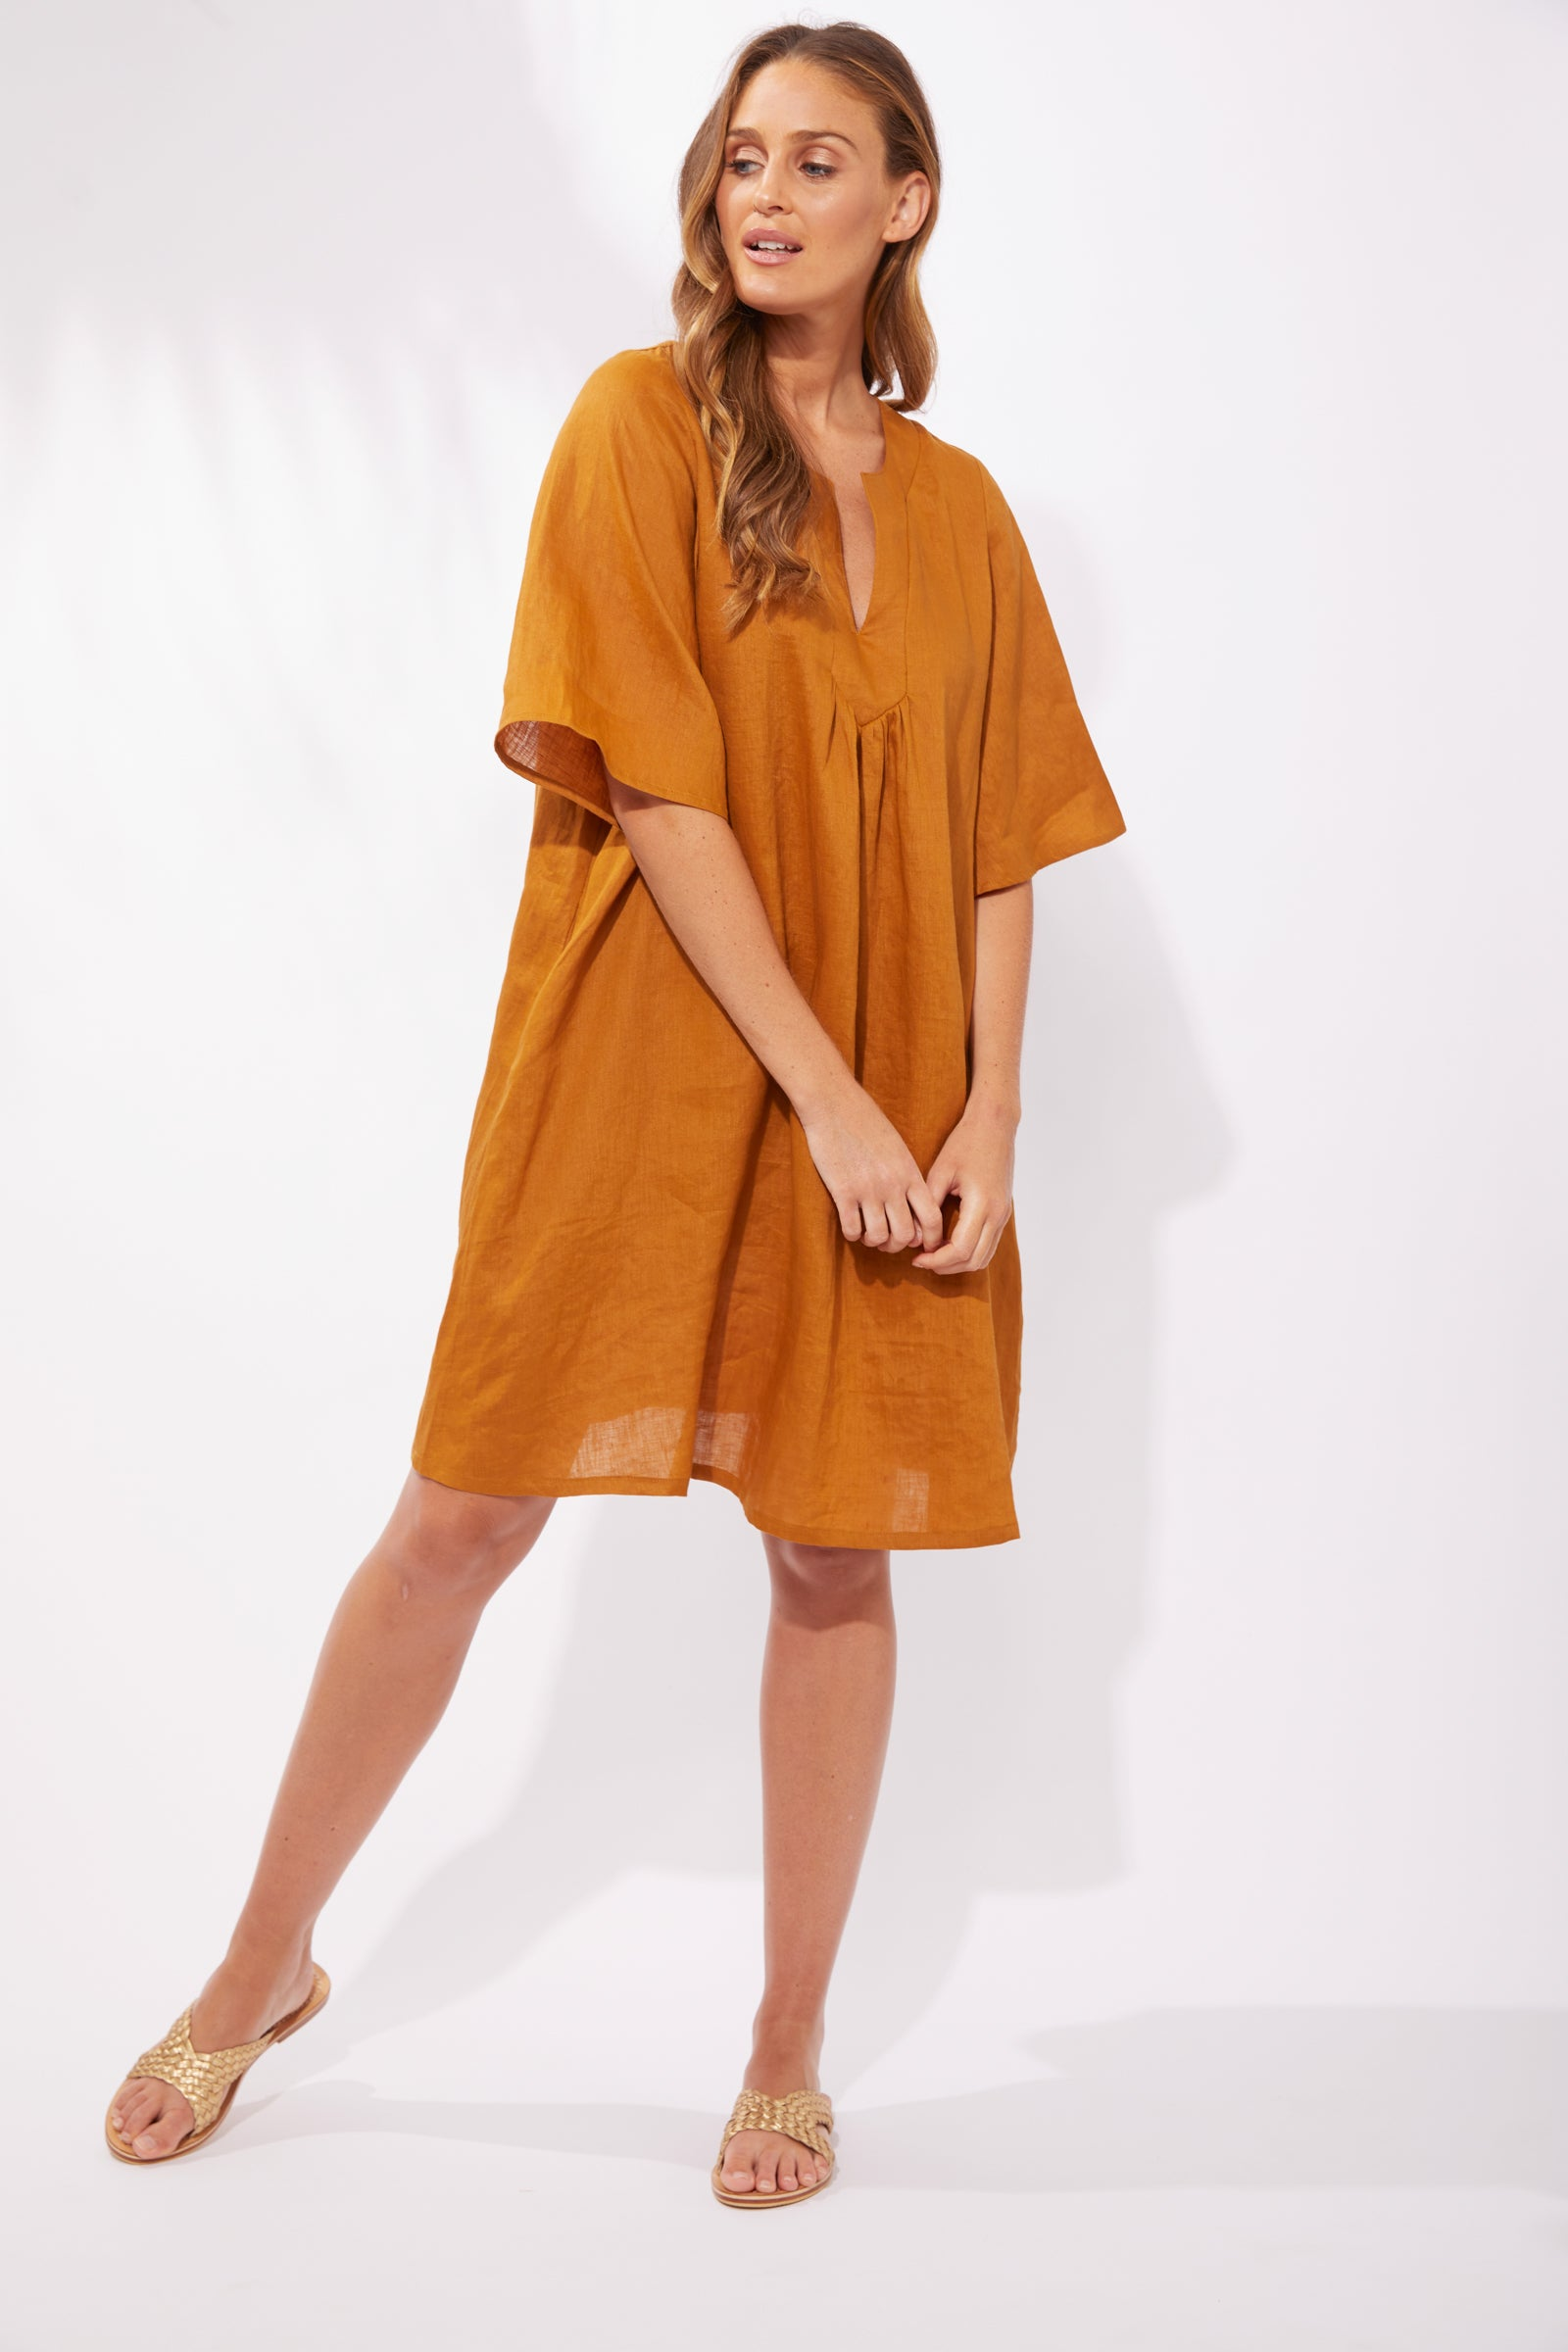 Majorca Dress - Caramel - The Haven Co